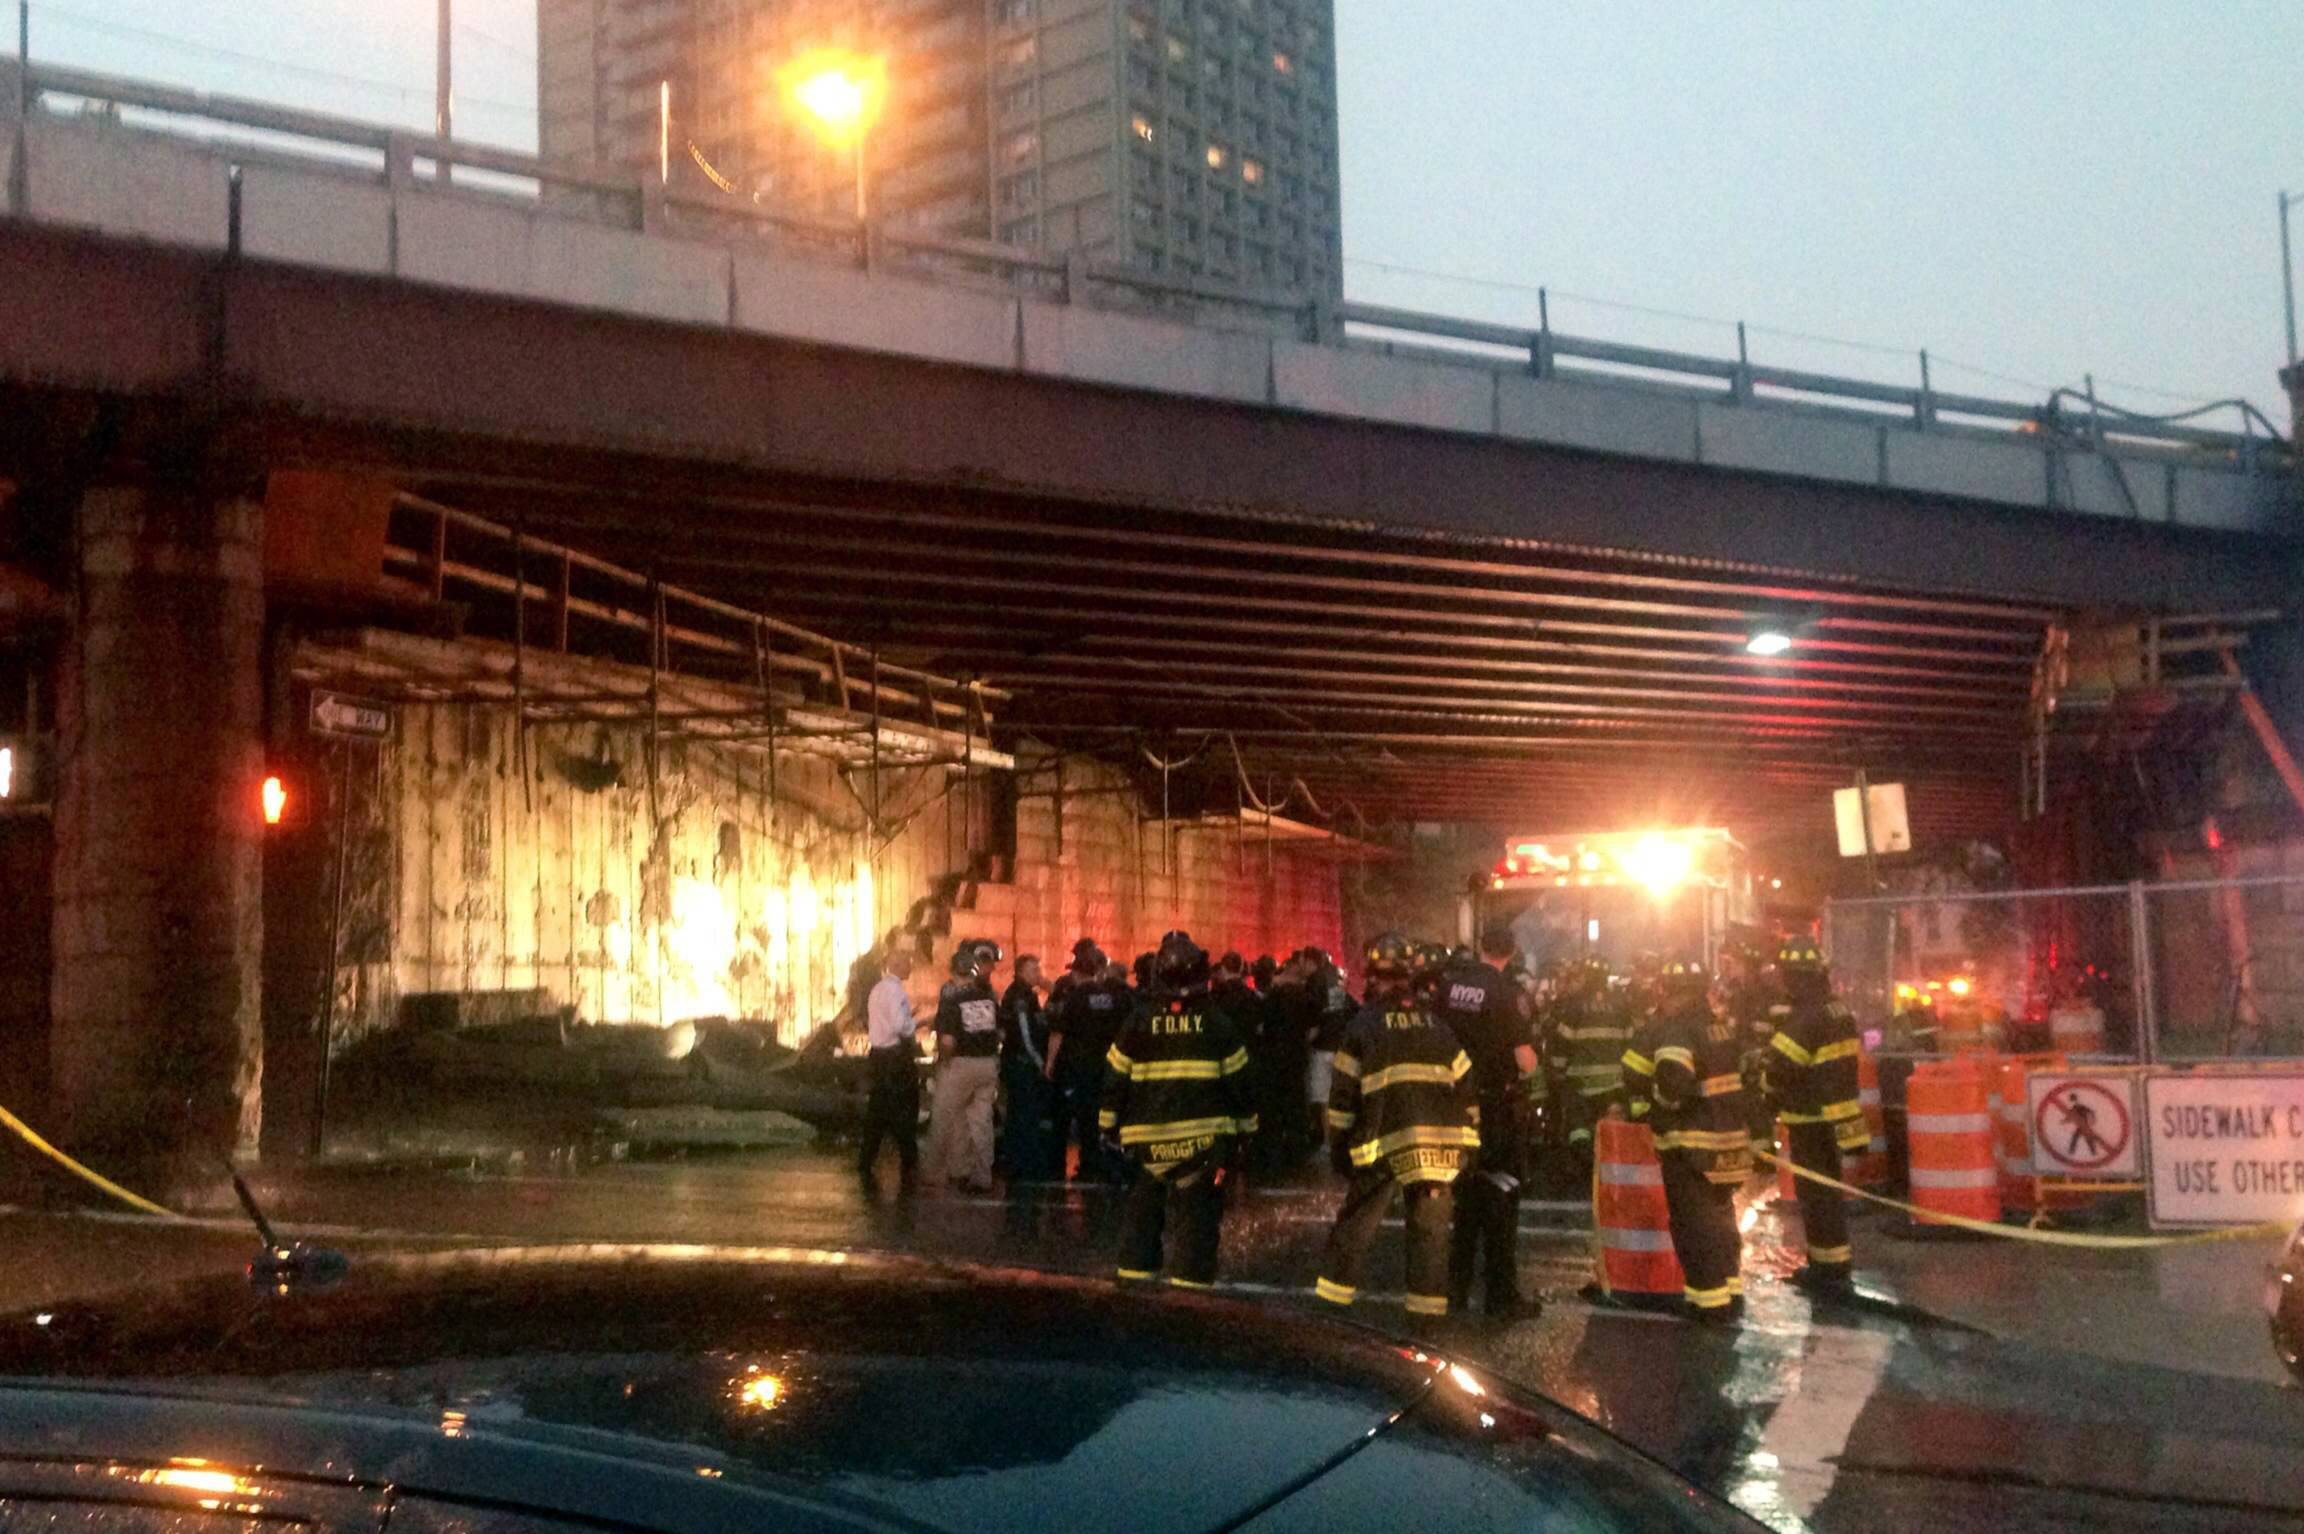 Emergency personal near a section of the facade Wednesday inside an underpass of the Brooklyn Bridge after it had collapsed. A fire department spokesman says five people were injured.